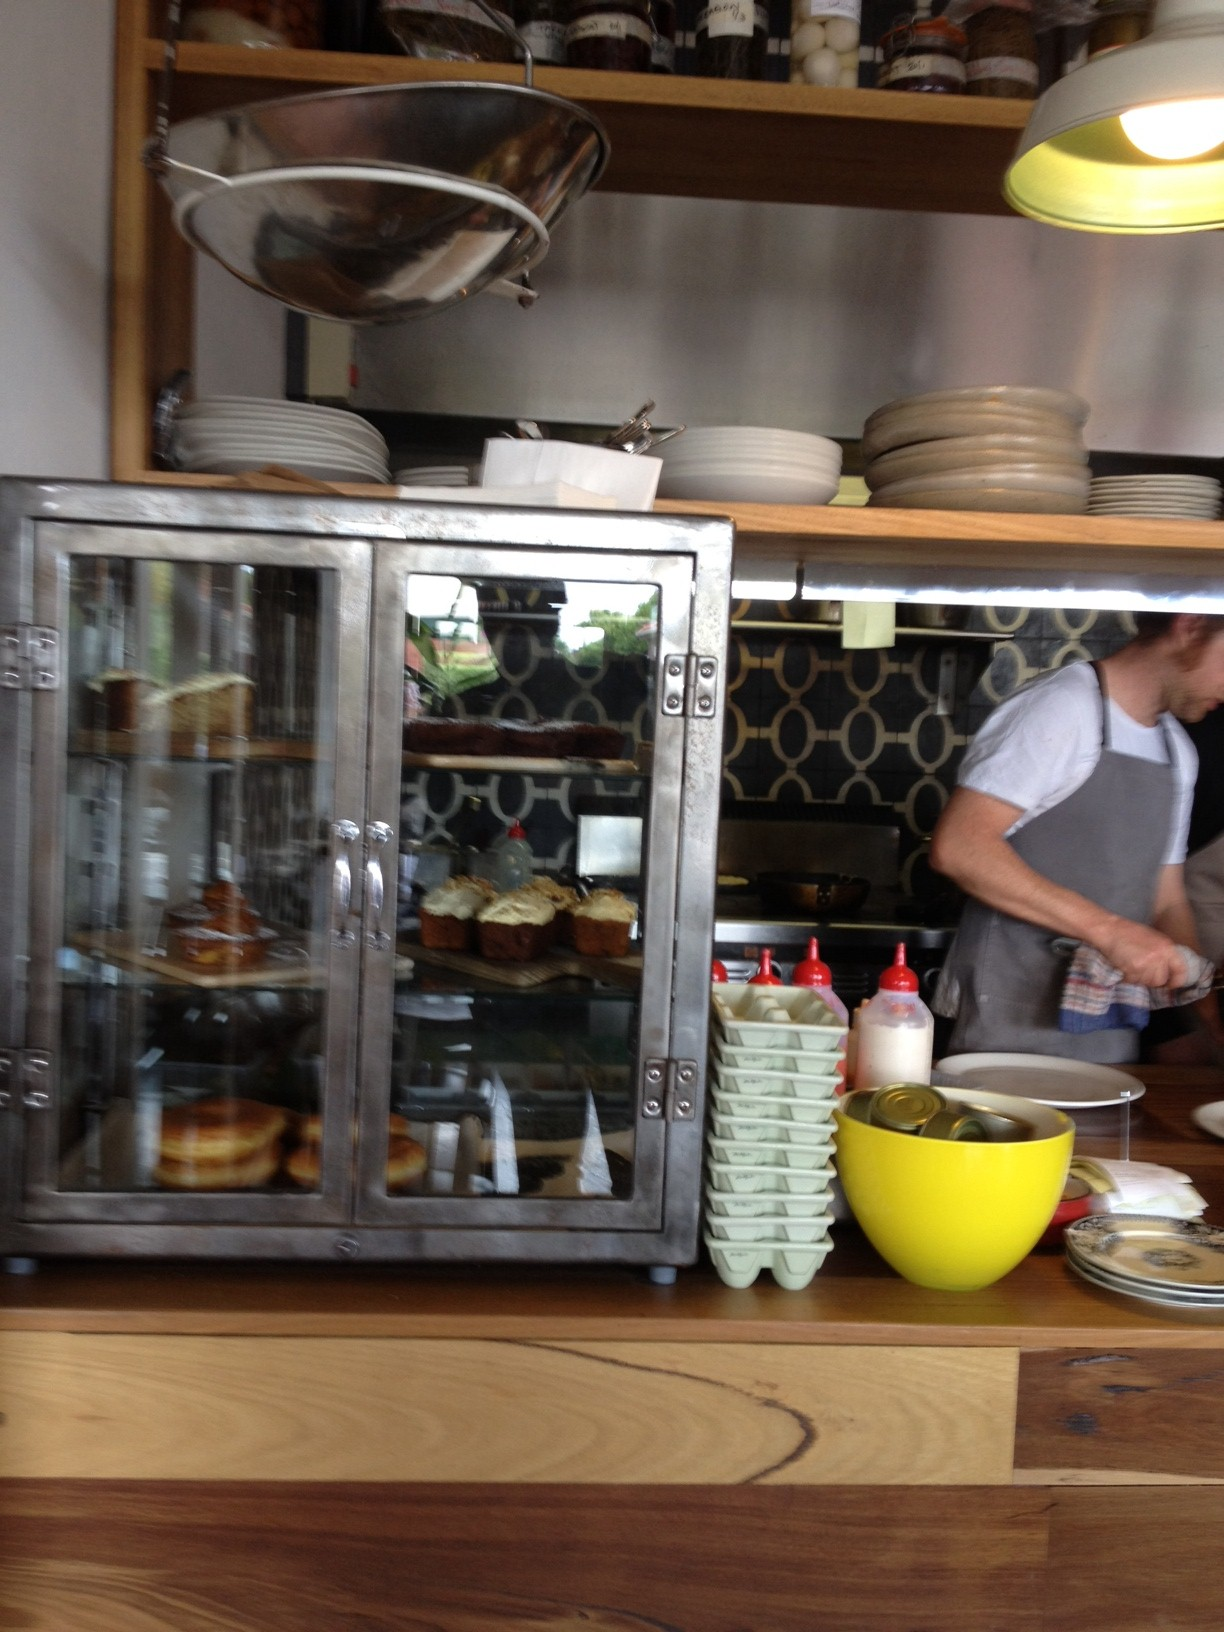 The counter when first entering Pope Joan with loads of little baked goodies on display.